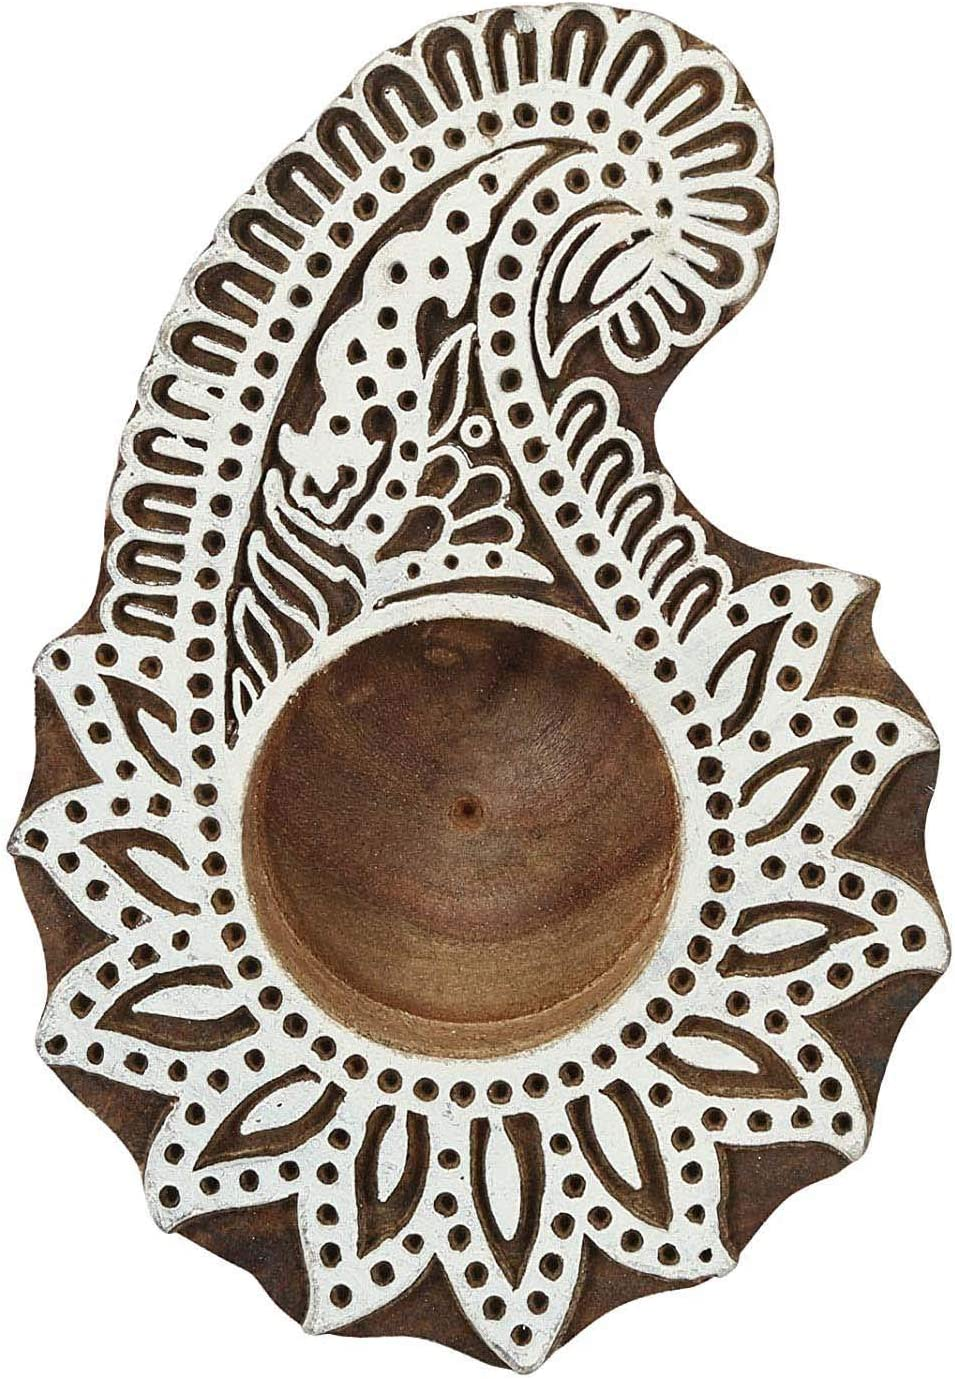 Sharvgun Store Indian Sales results No. 1 Wooden Printing Blocks Carved Hand Paisley Texti